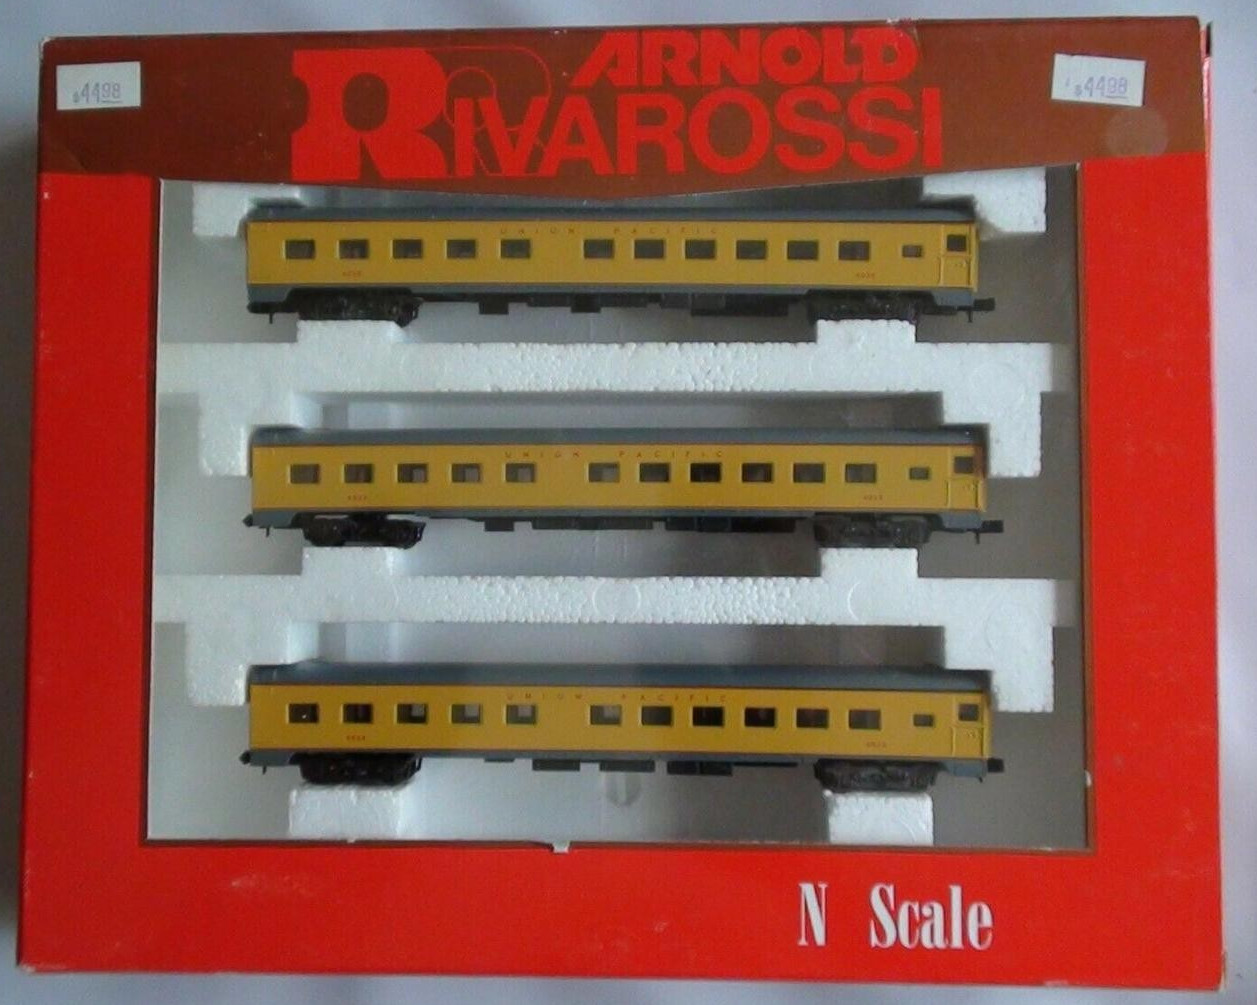 N Scale - Arnold - 0511 - Passenger Car, Lightweight, Smoothside - Union Pacific